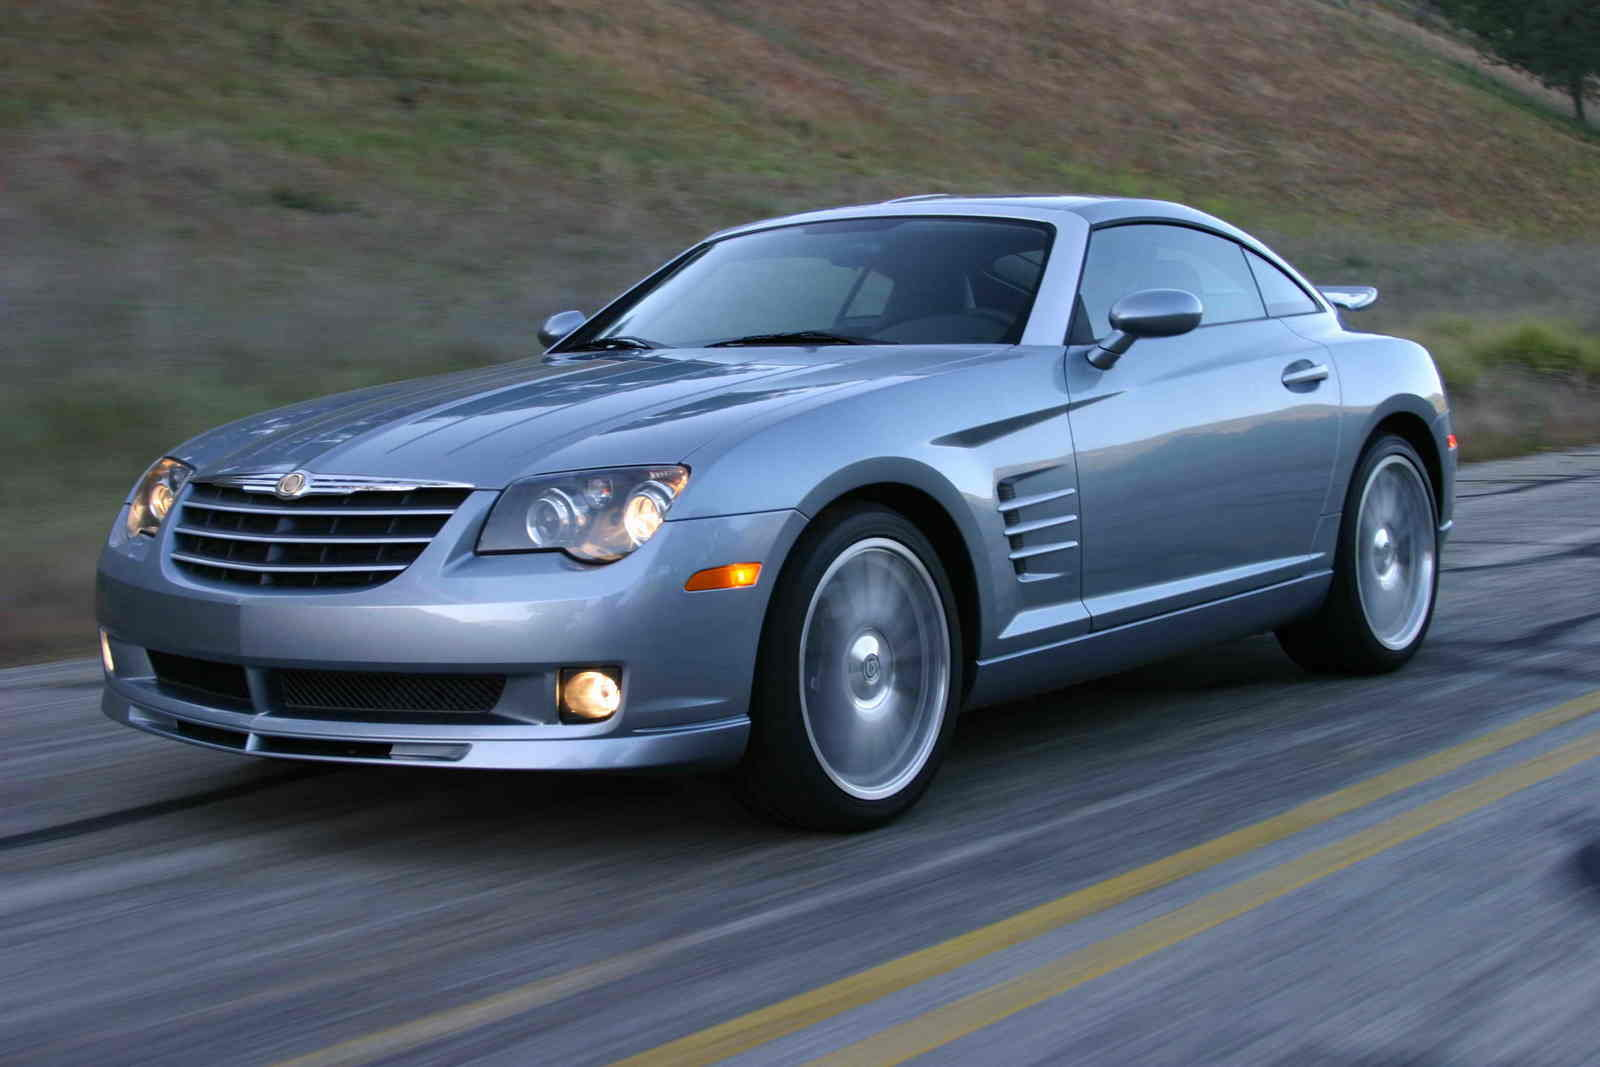 2005 Chrysler Crossfire #19